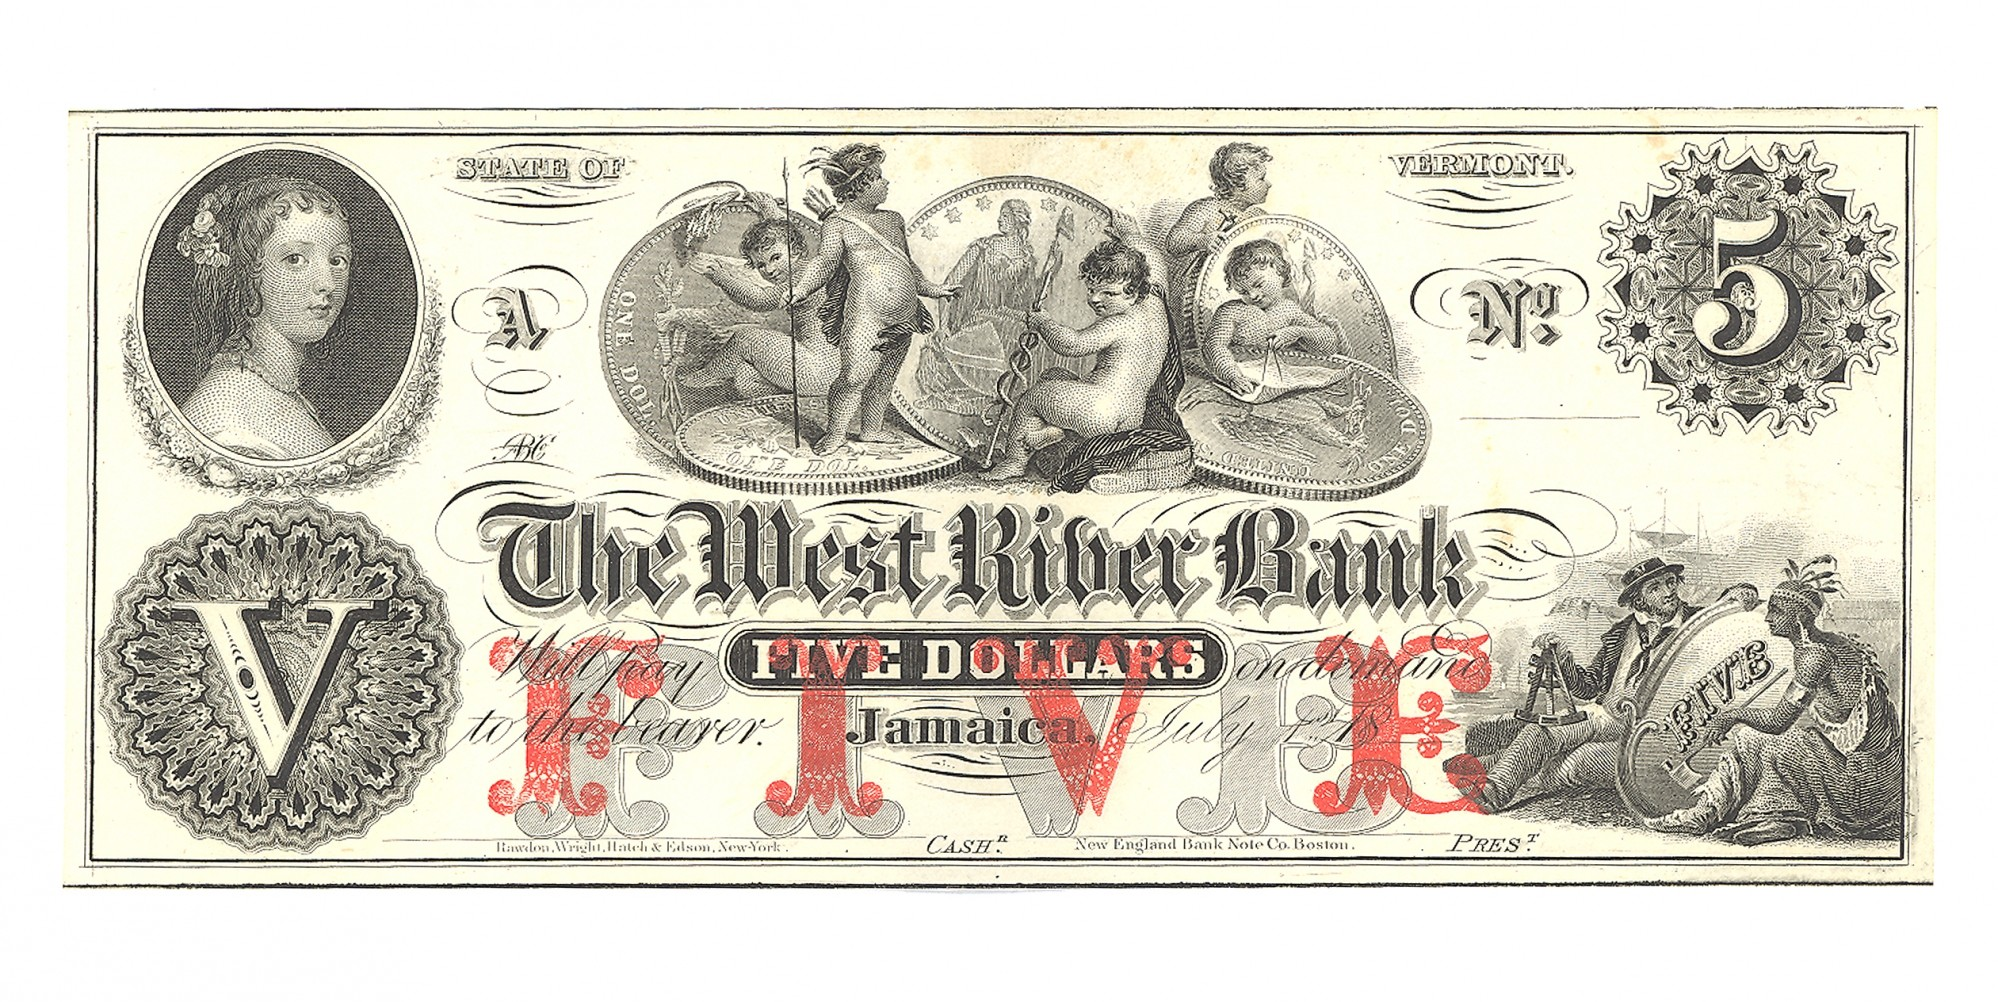 THE WEST RIVER BANK, JAMAICA, VERMONT, $5 NOTE